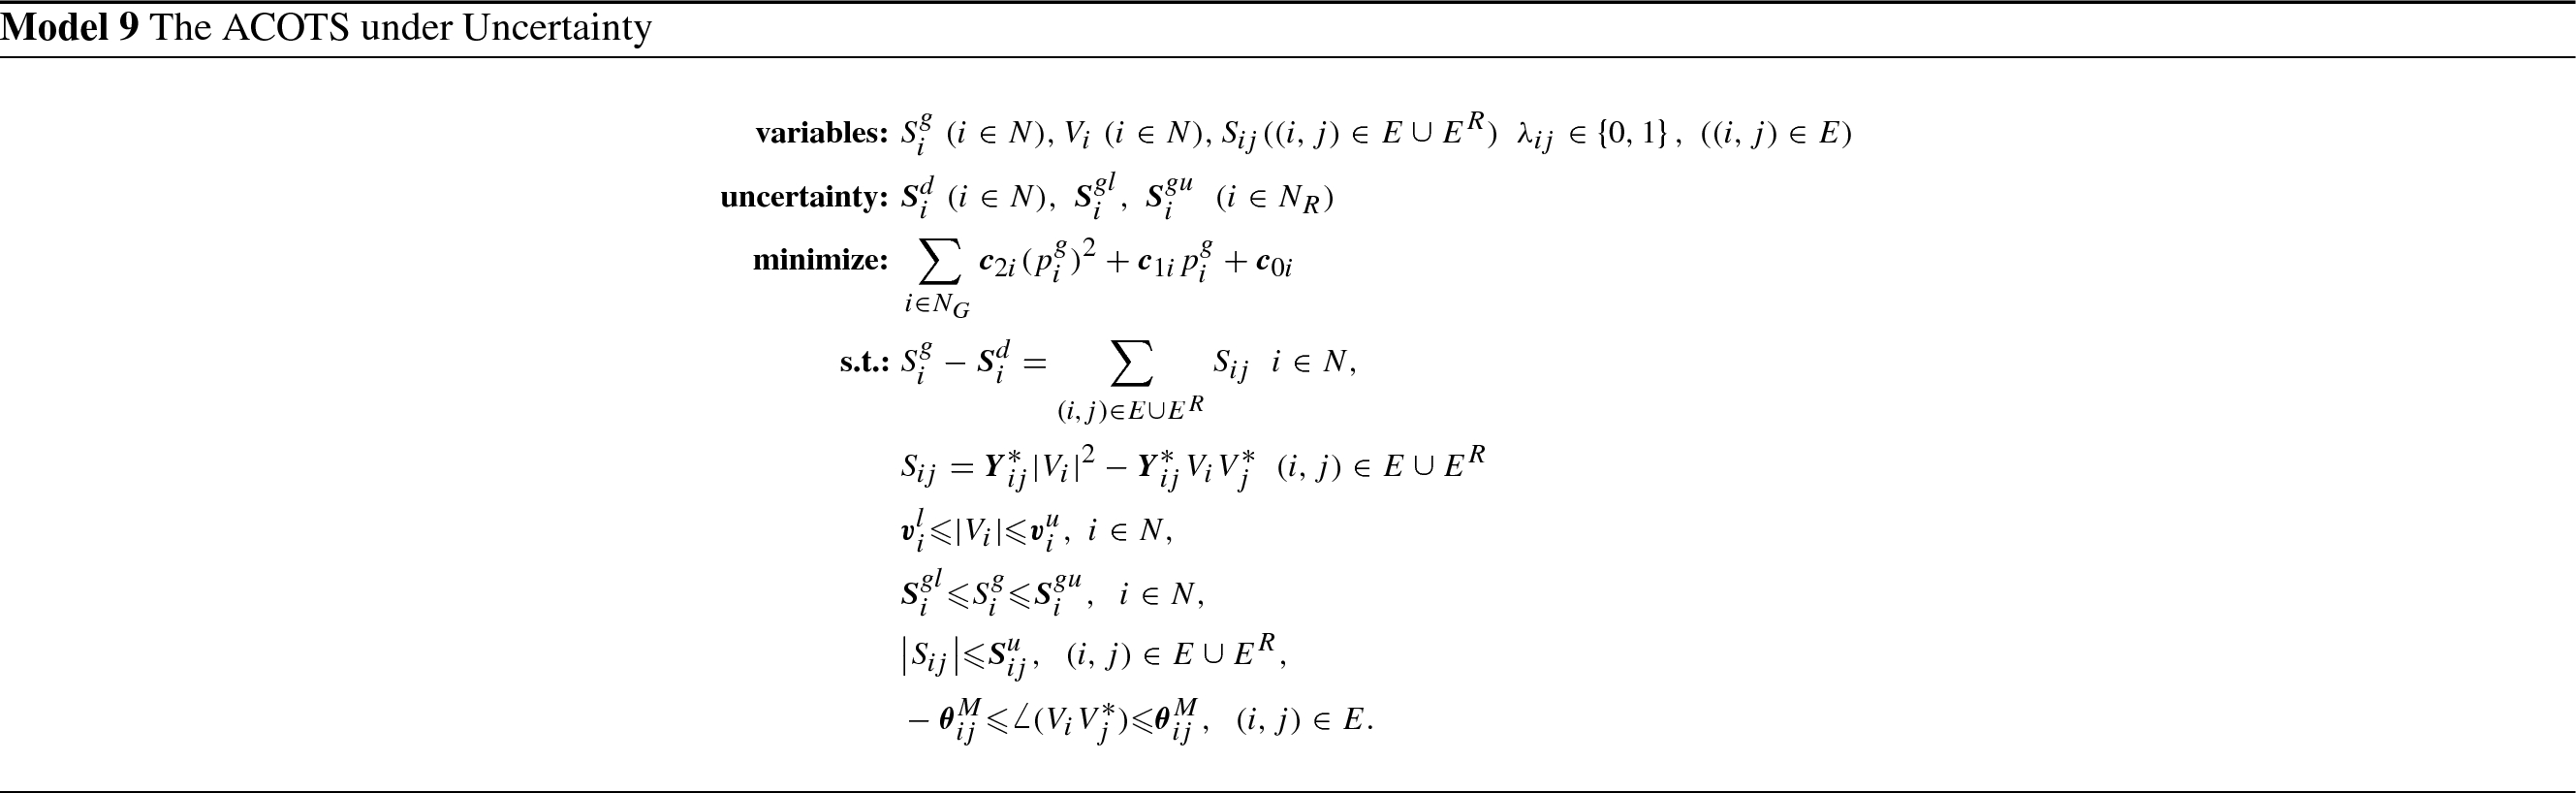 Mathematical Programming Methods For Microgrid Design And Operations Rrd Fan Extender Fr Ramps 14 1690 Eur To The Best Of Our Knowledge There Is Only One Paper By Taheri Et Al 234 Tackling Ots With Uncertainty Using Exact